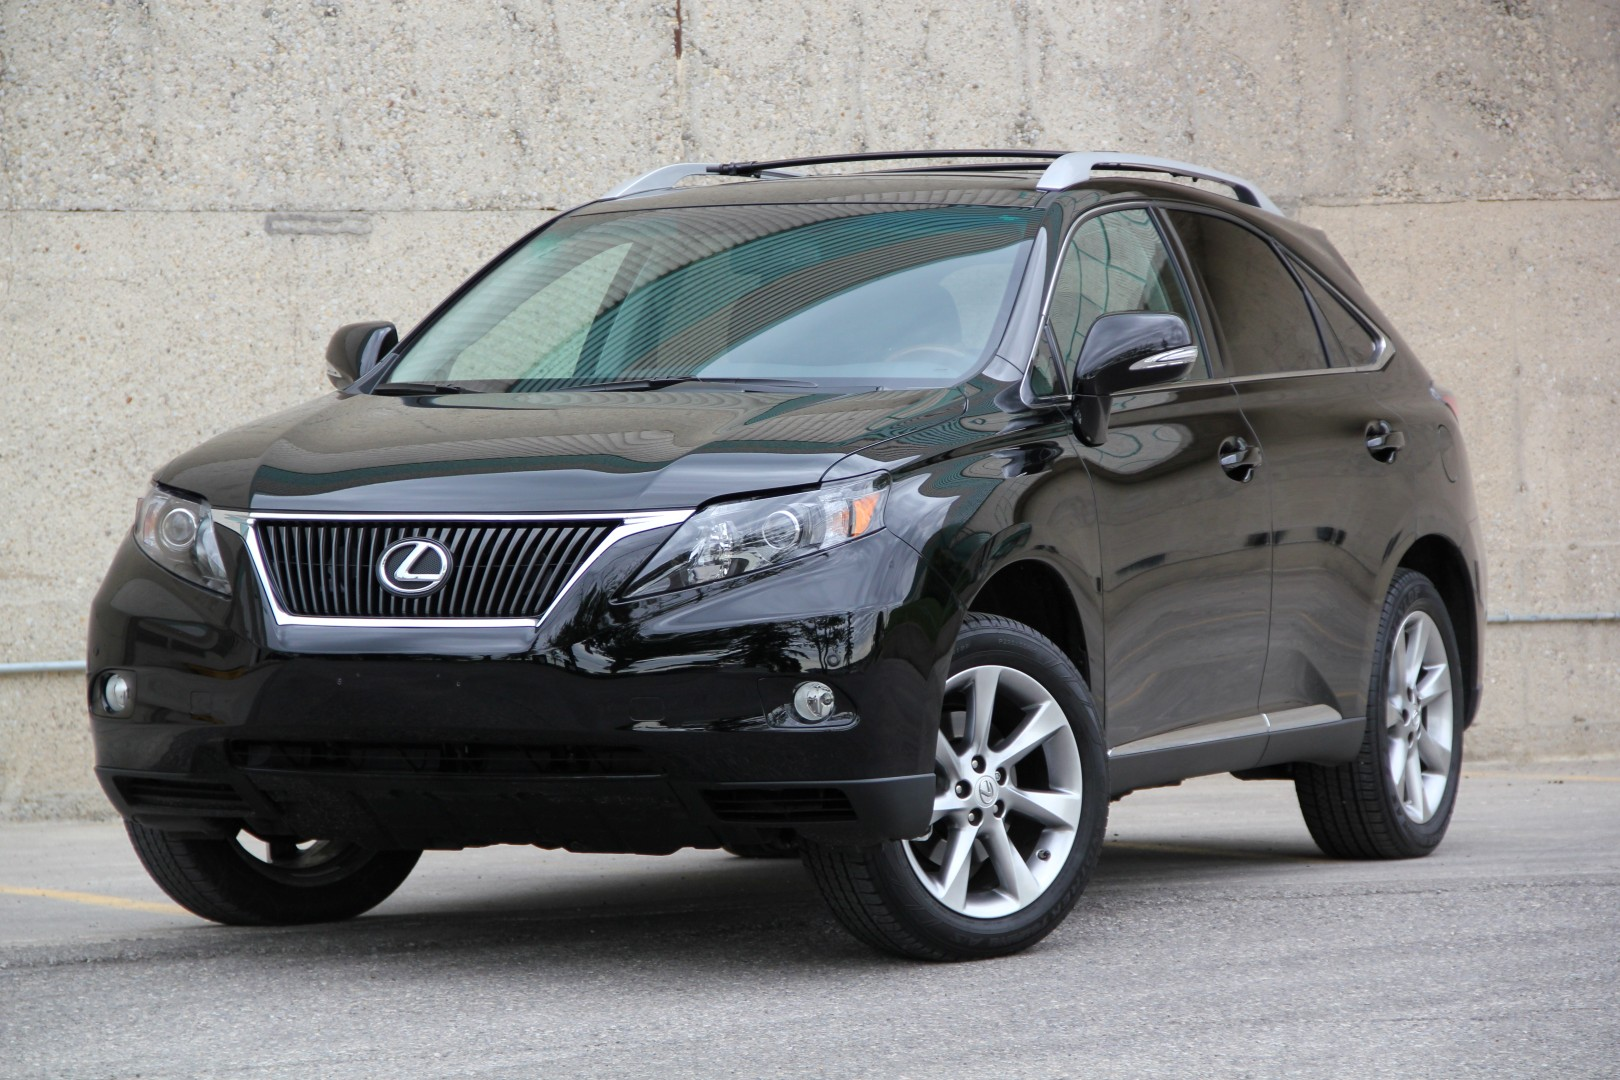 2012 lexus rx350 awd ultra premium park assist satin wheels envision auto. Black Bedroom Furniture Sets. Home Design Ideas